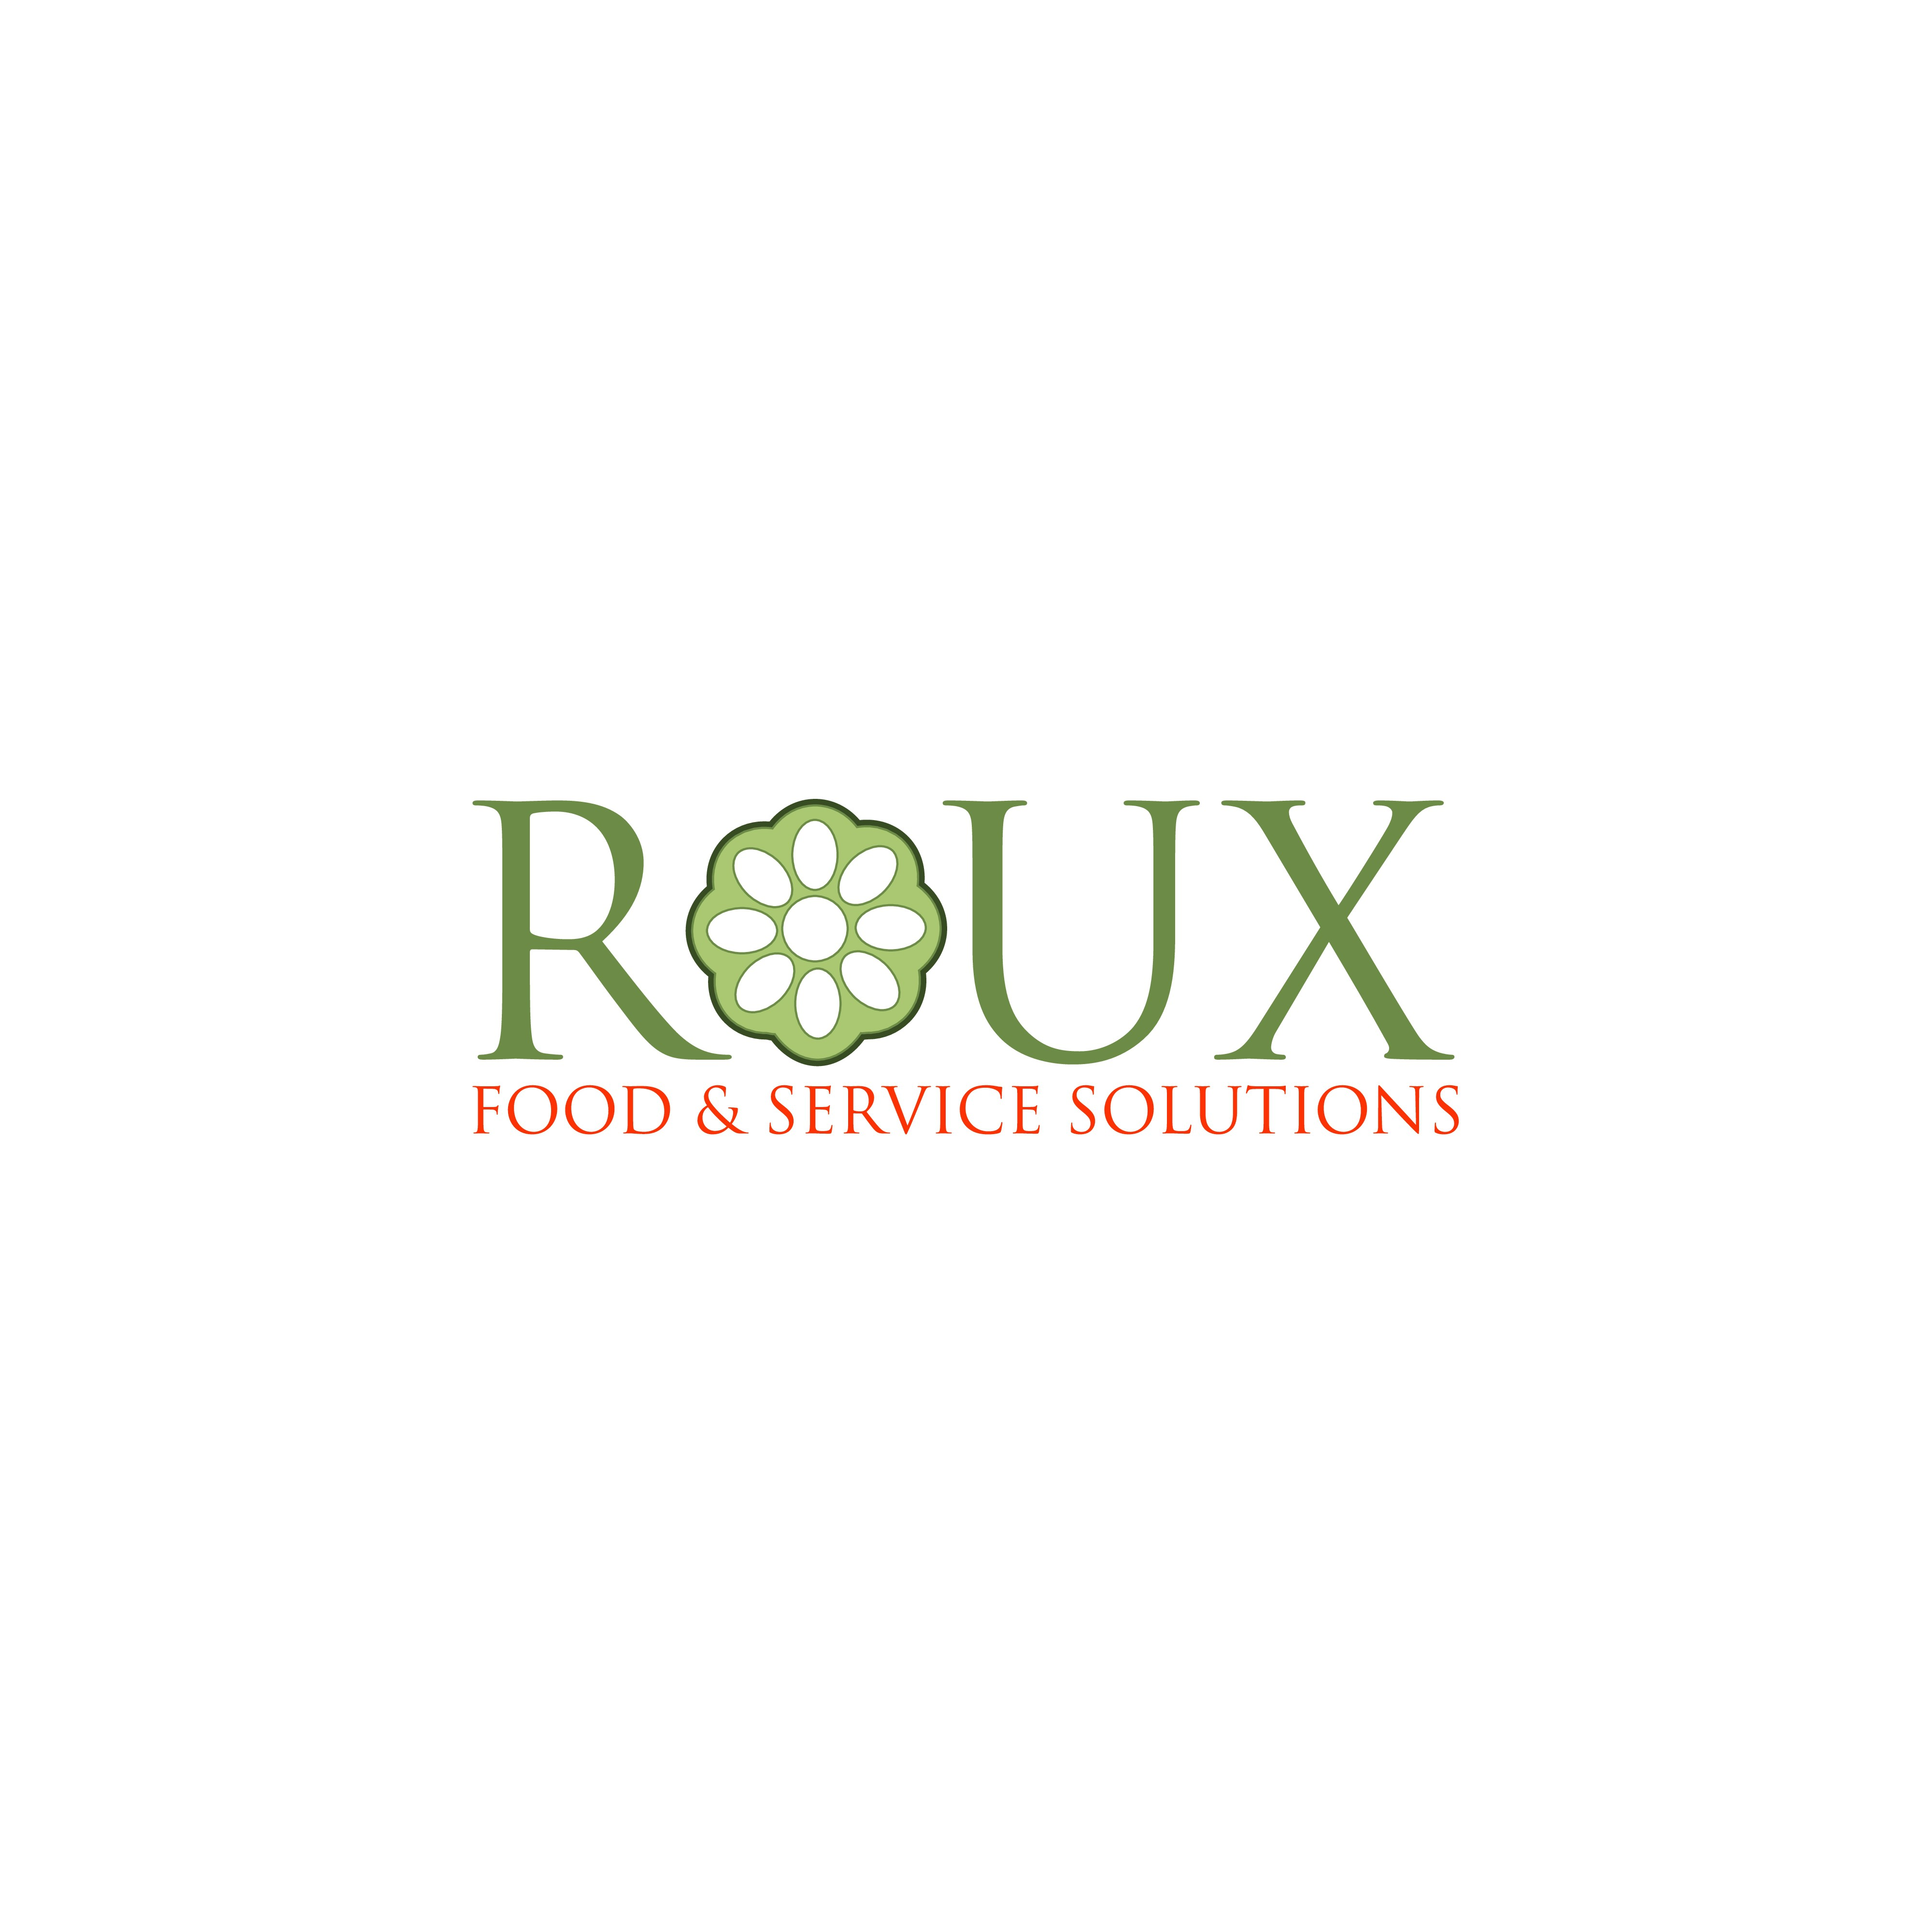 Create a fun, whimsical logo for my restaurant consulting buisness